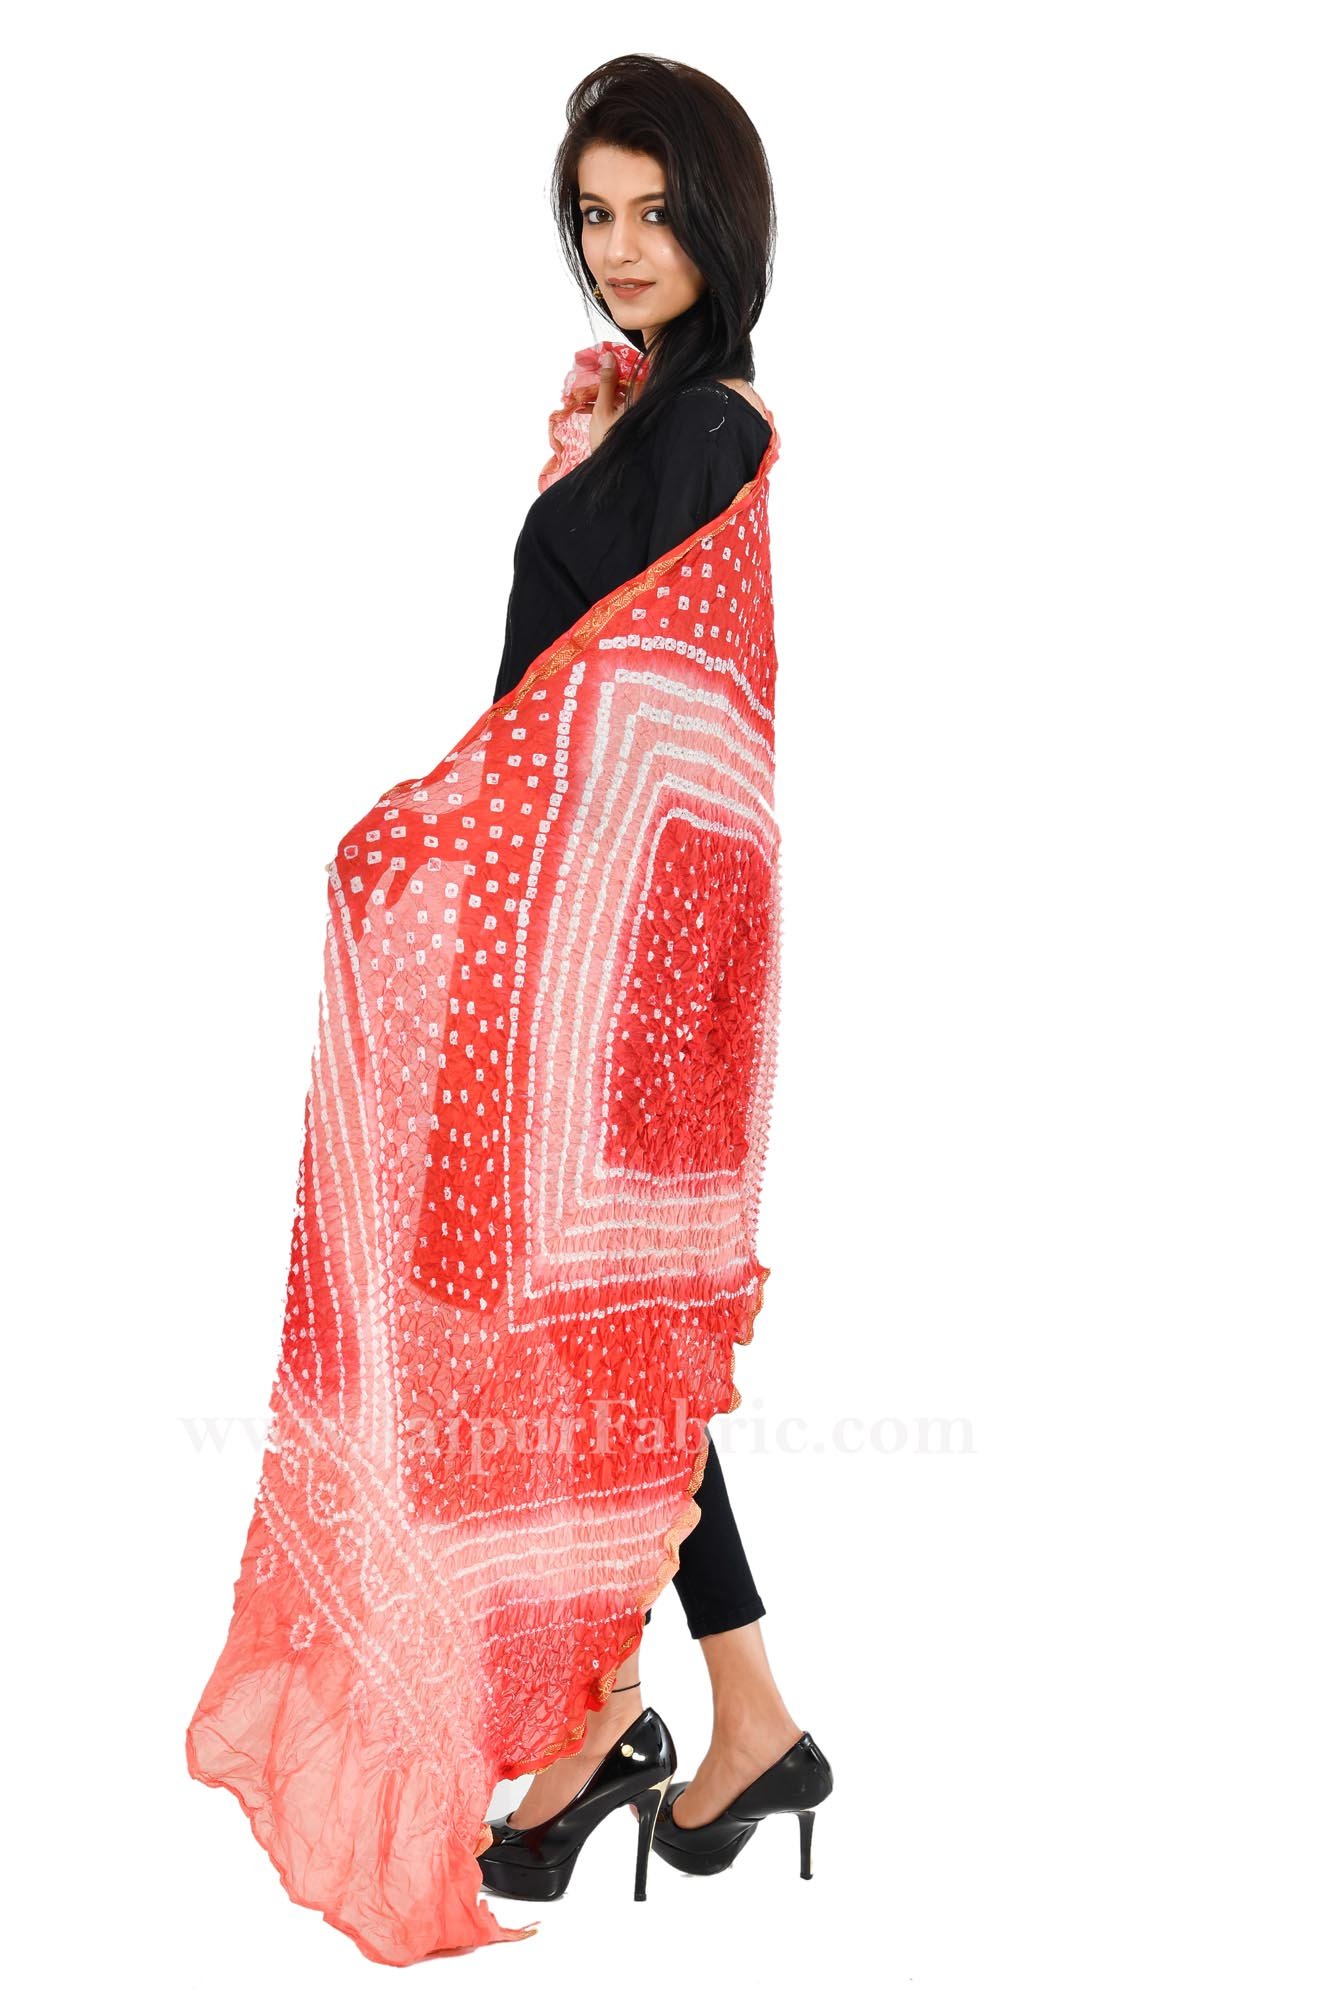 Zari Border Multi Colored Jaipuri Rajasthani Art Silk Heavy Dupatta Chunni